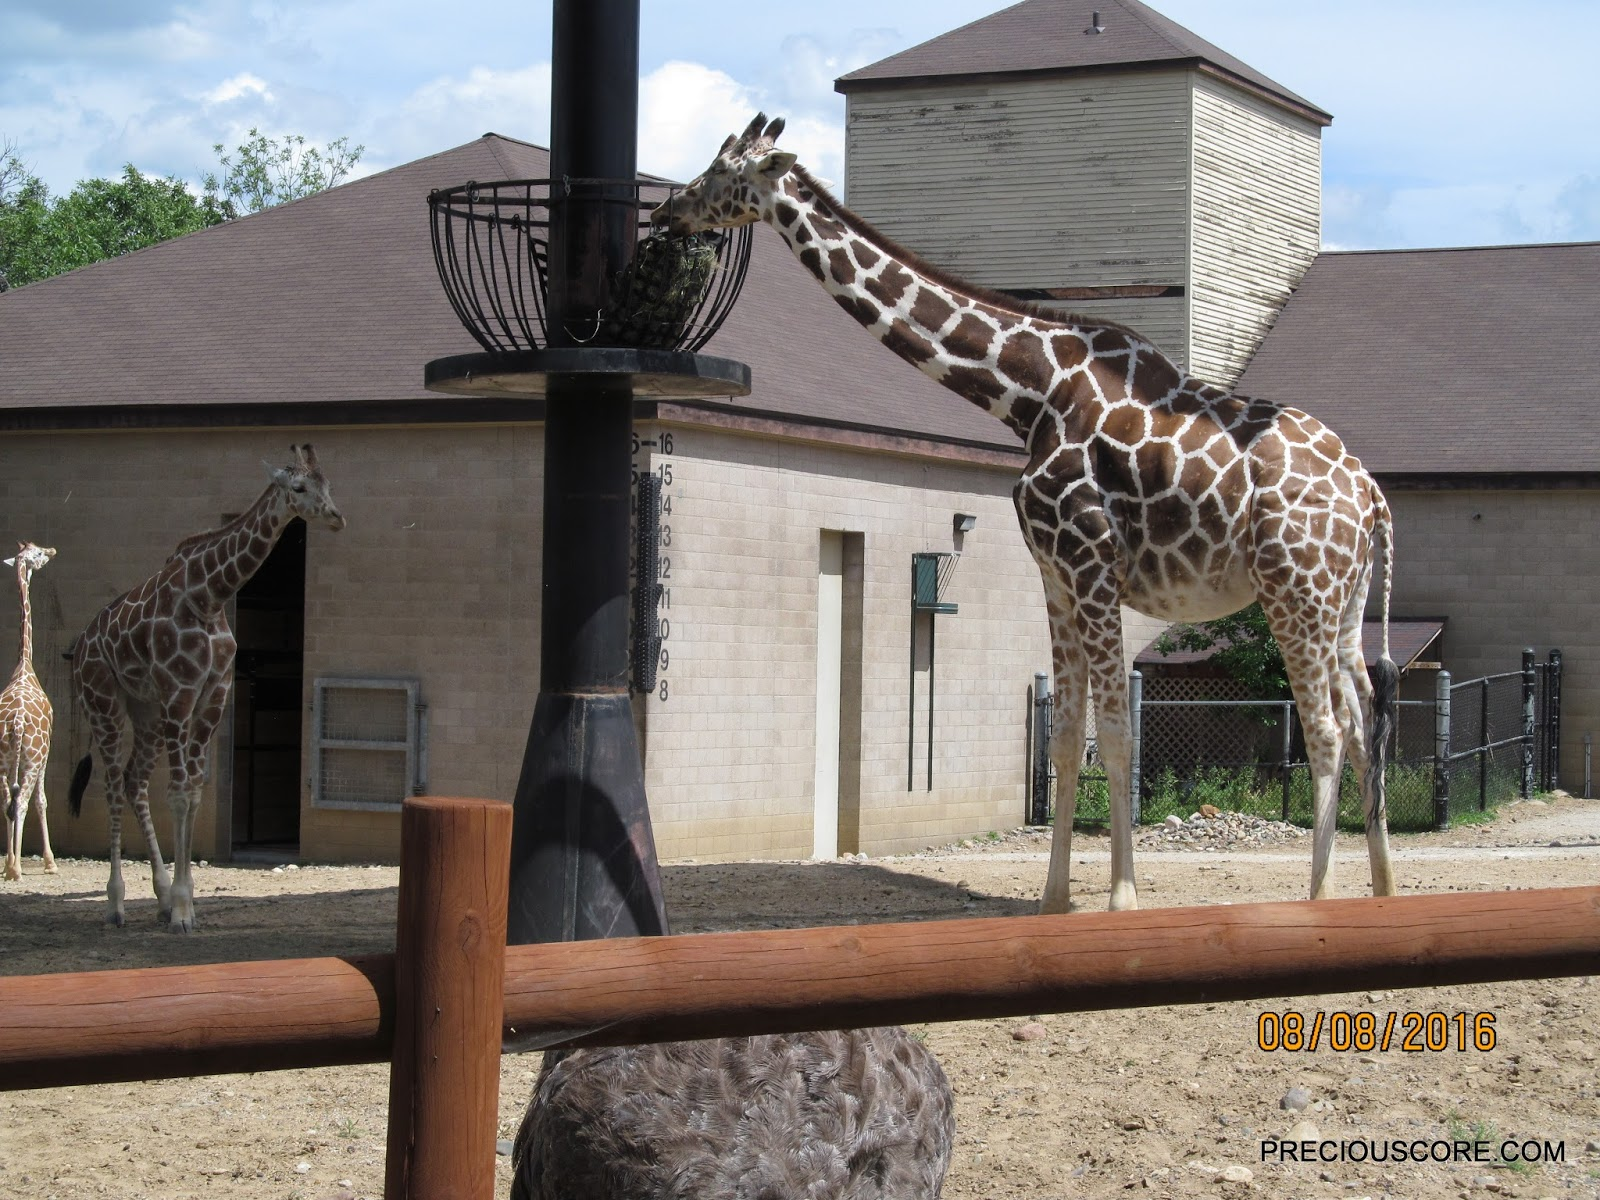 giraffe at Como Zoo